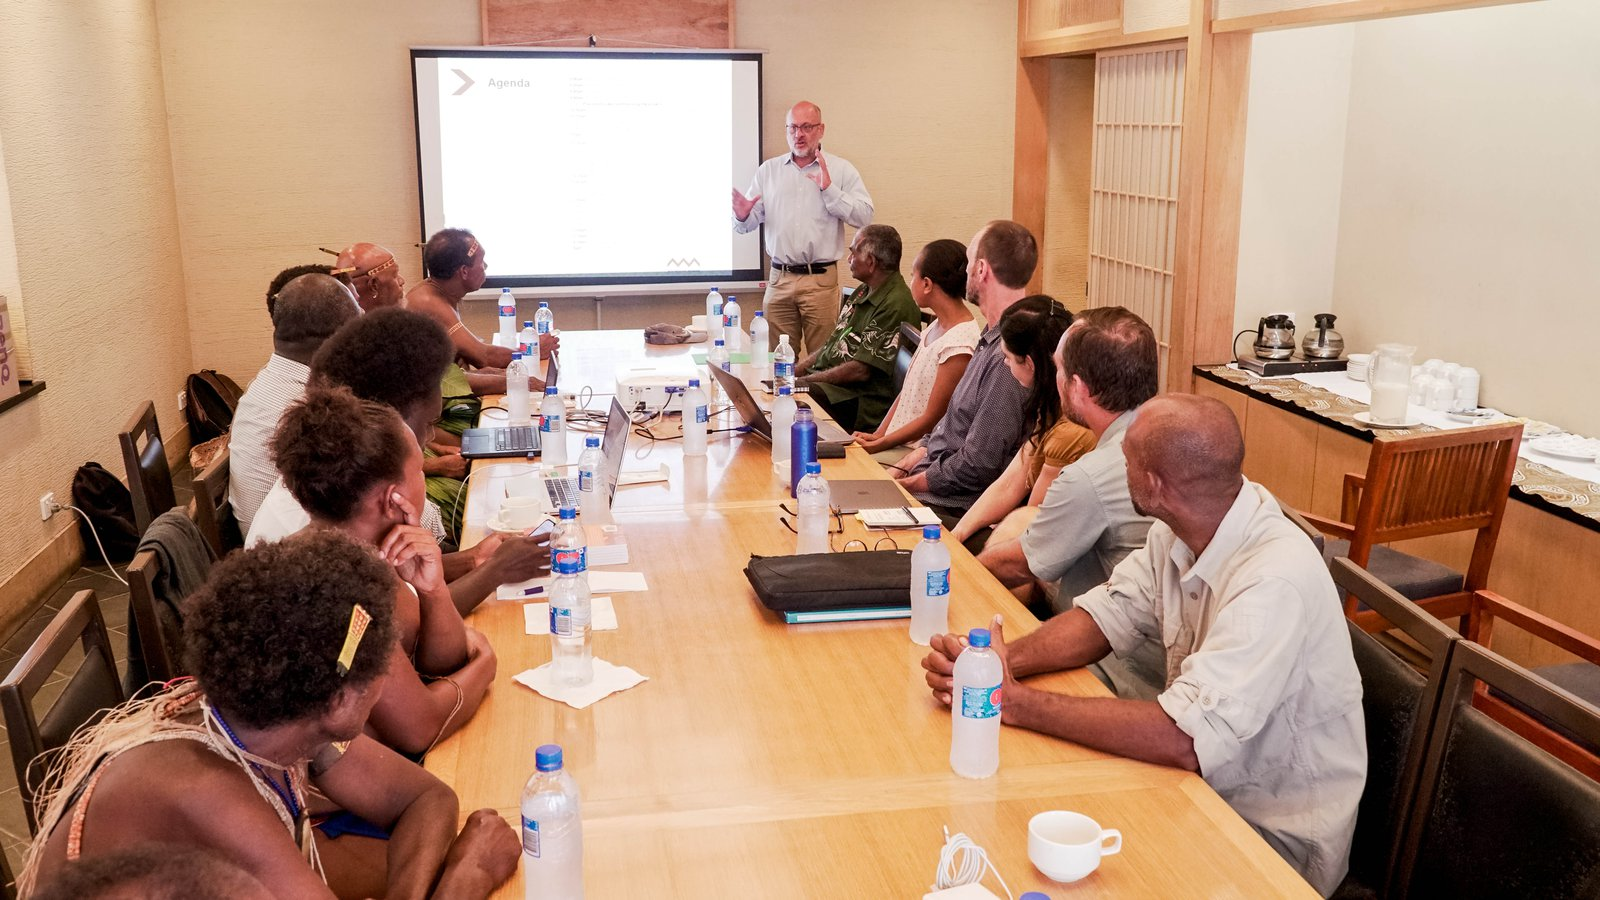 Tim Flannery presents to the attendees at the Honiara workshop, September 2019.